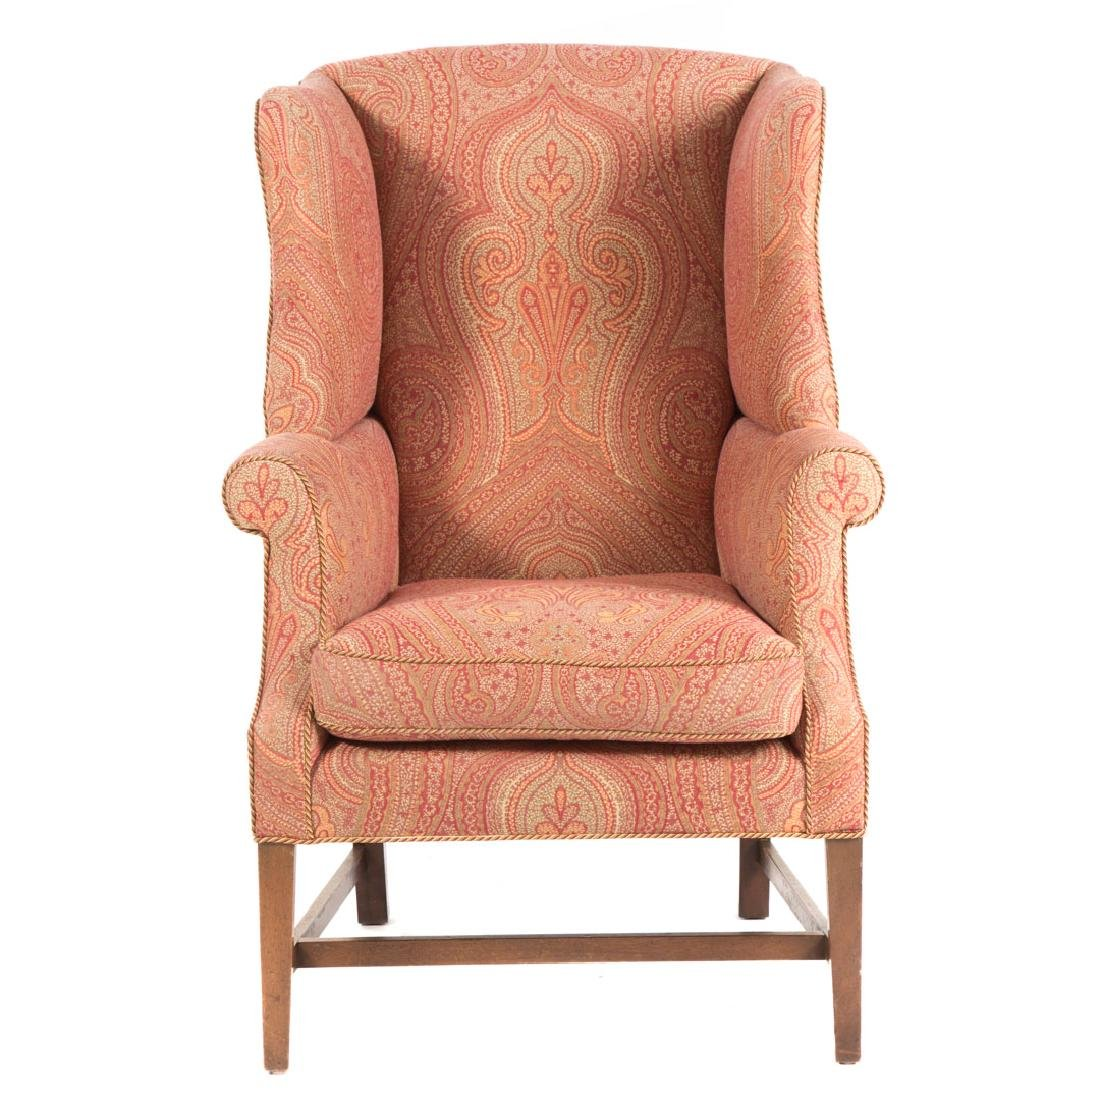 Federal style mahogany upholstered wing chair